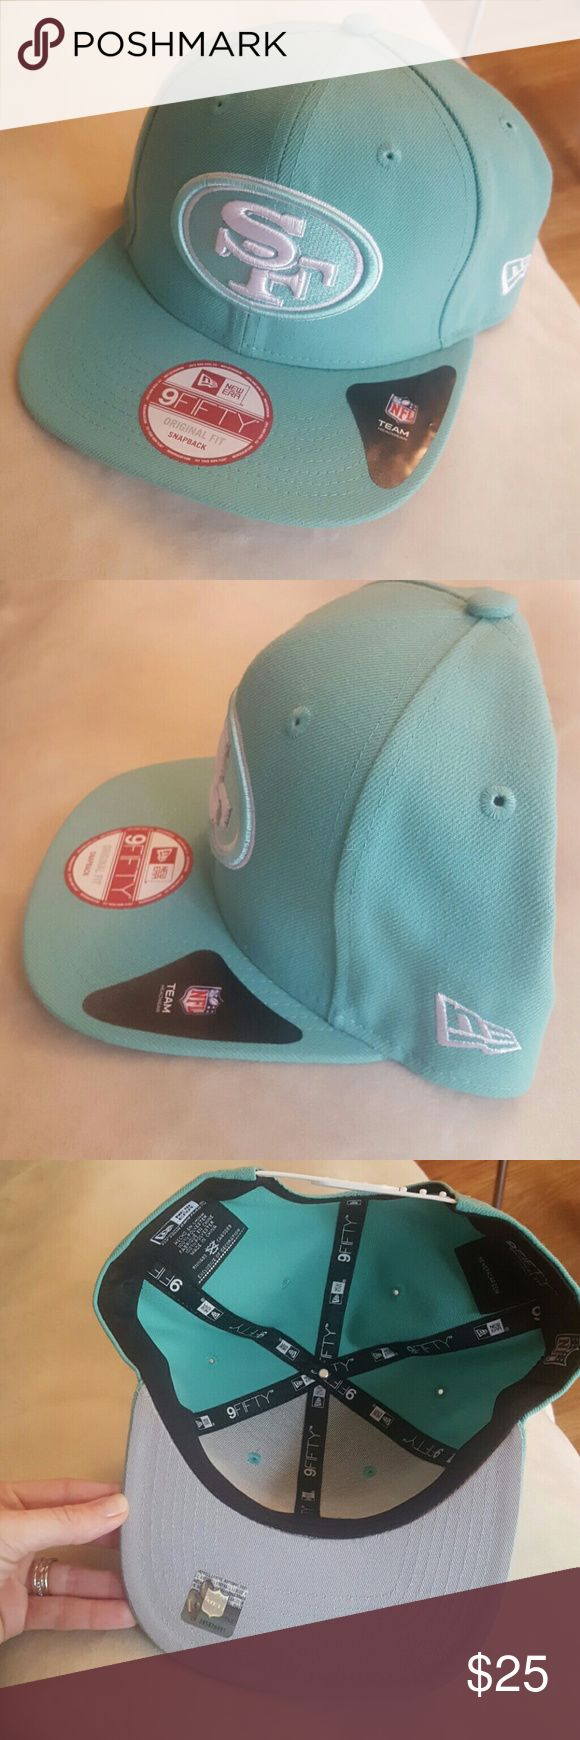 NEW SF 49ers NFL Mint green snapback hat NWT Awesome 49ers snapback hat original fit, original NFL team headwear, one-size-fits-most comma for men or women. Great gift for any 49ers fan! NFL Accessories Hats